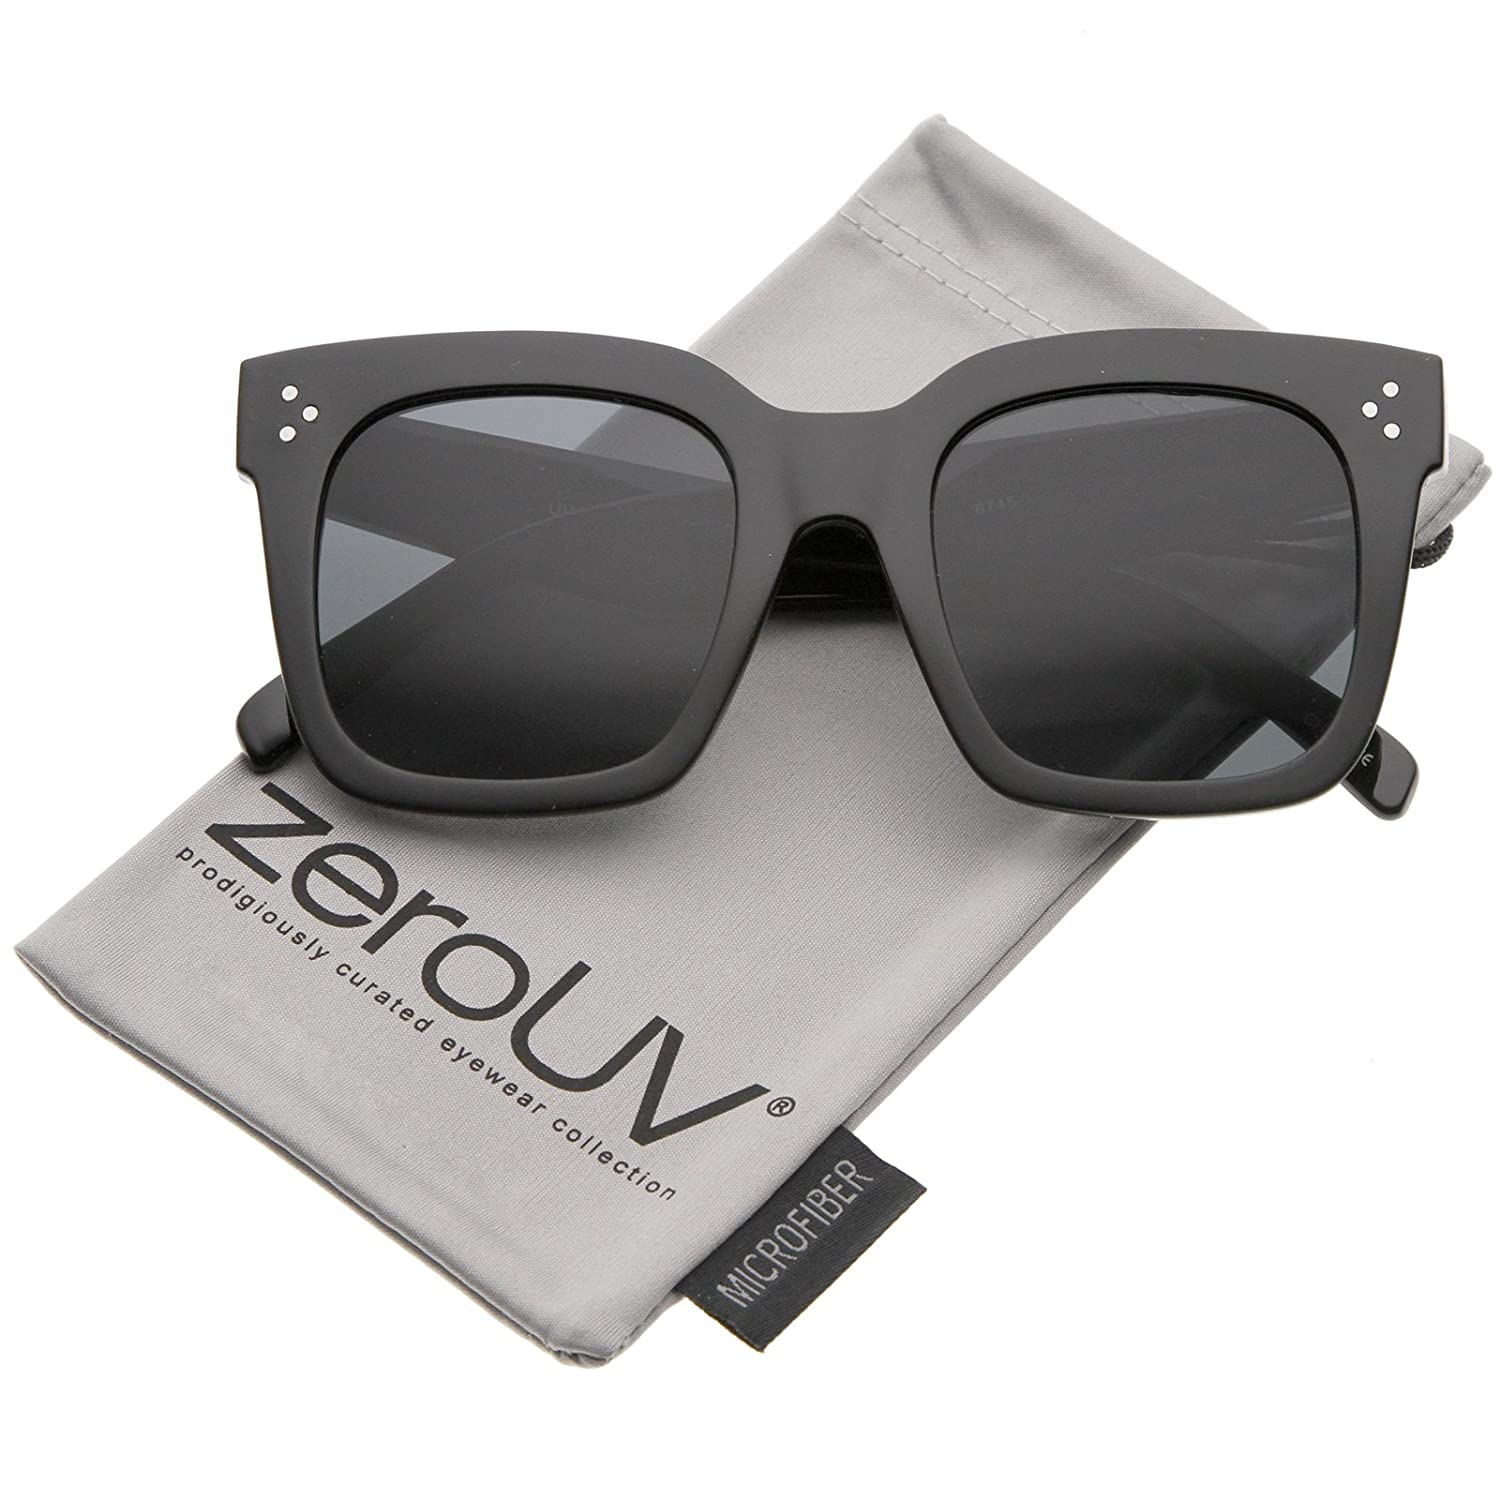 zeroUV - Retro Oversized Square Sunglasses for Women with Flat Lens 50mm frame&optic ZV-A252-03